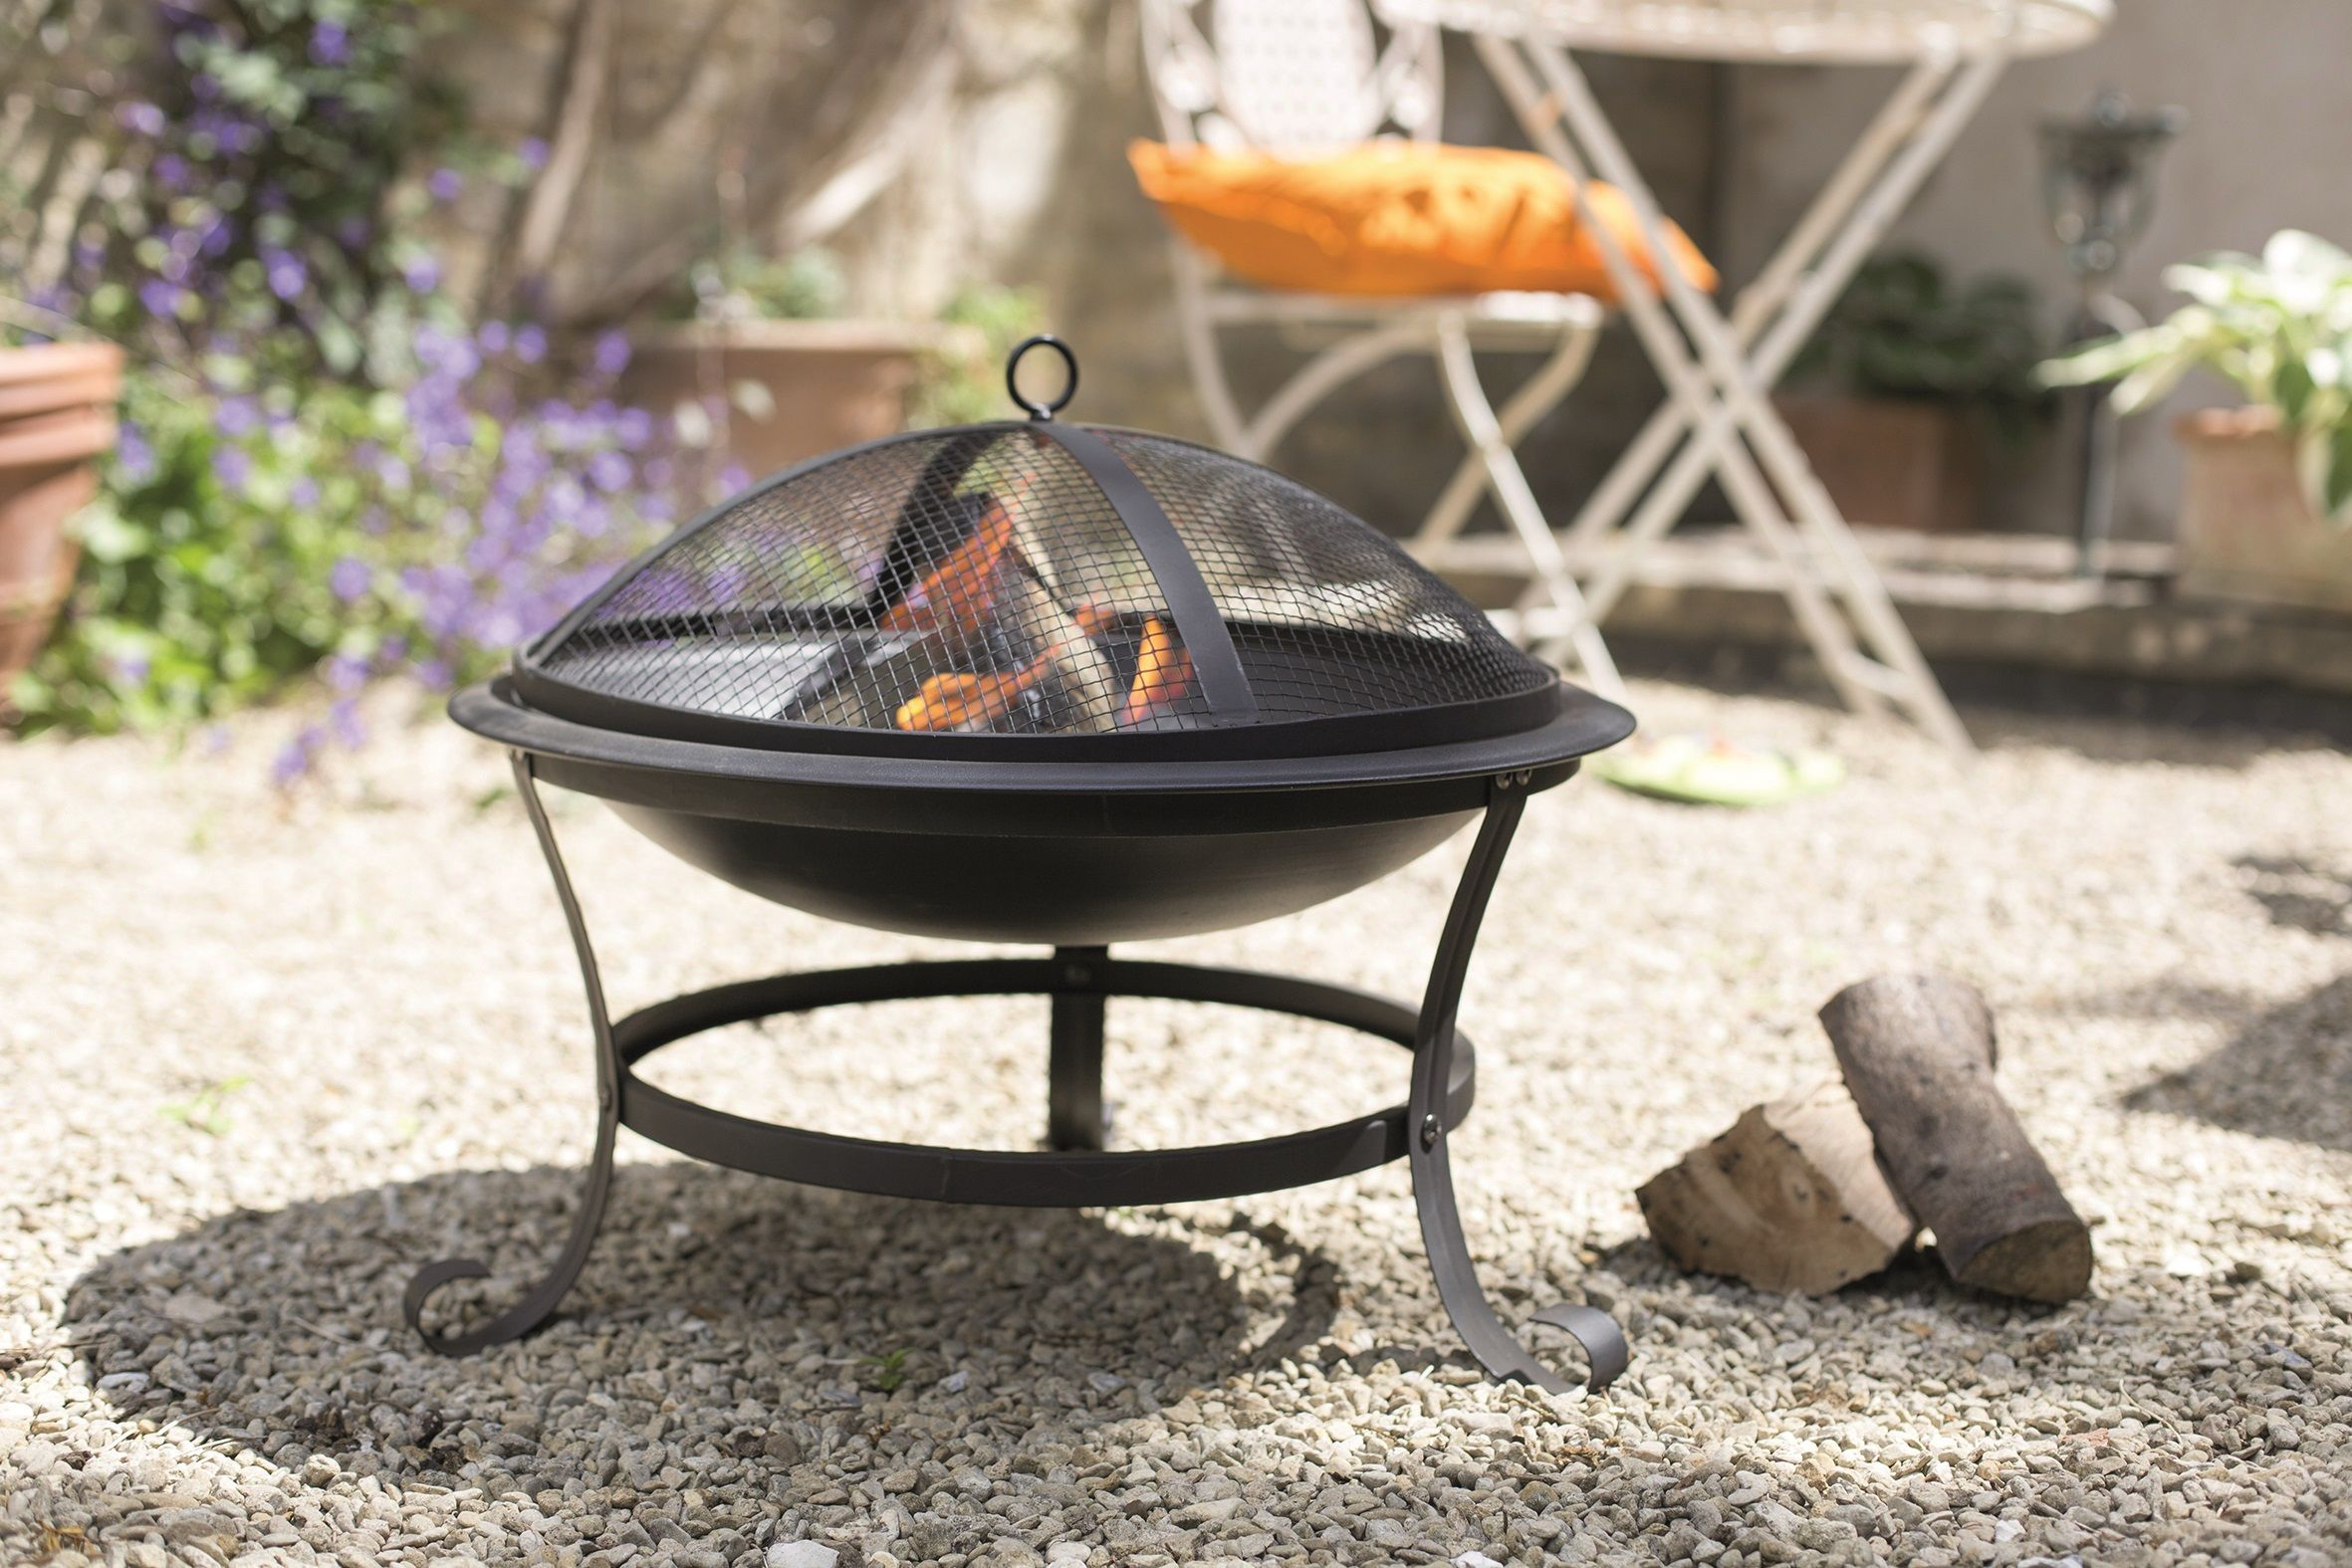 Lidl is selling a garden fire pit for just £25